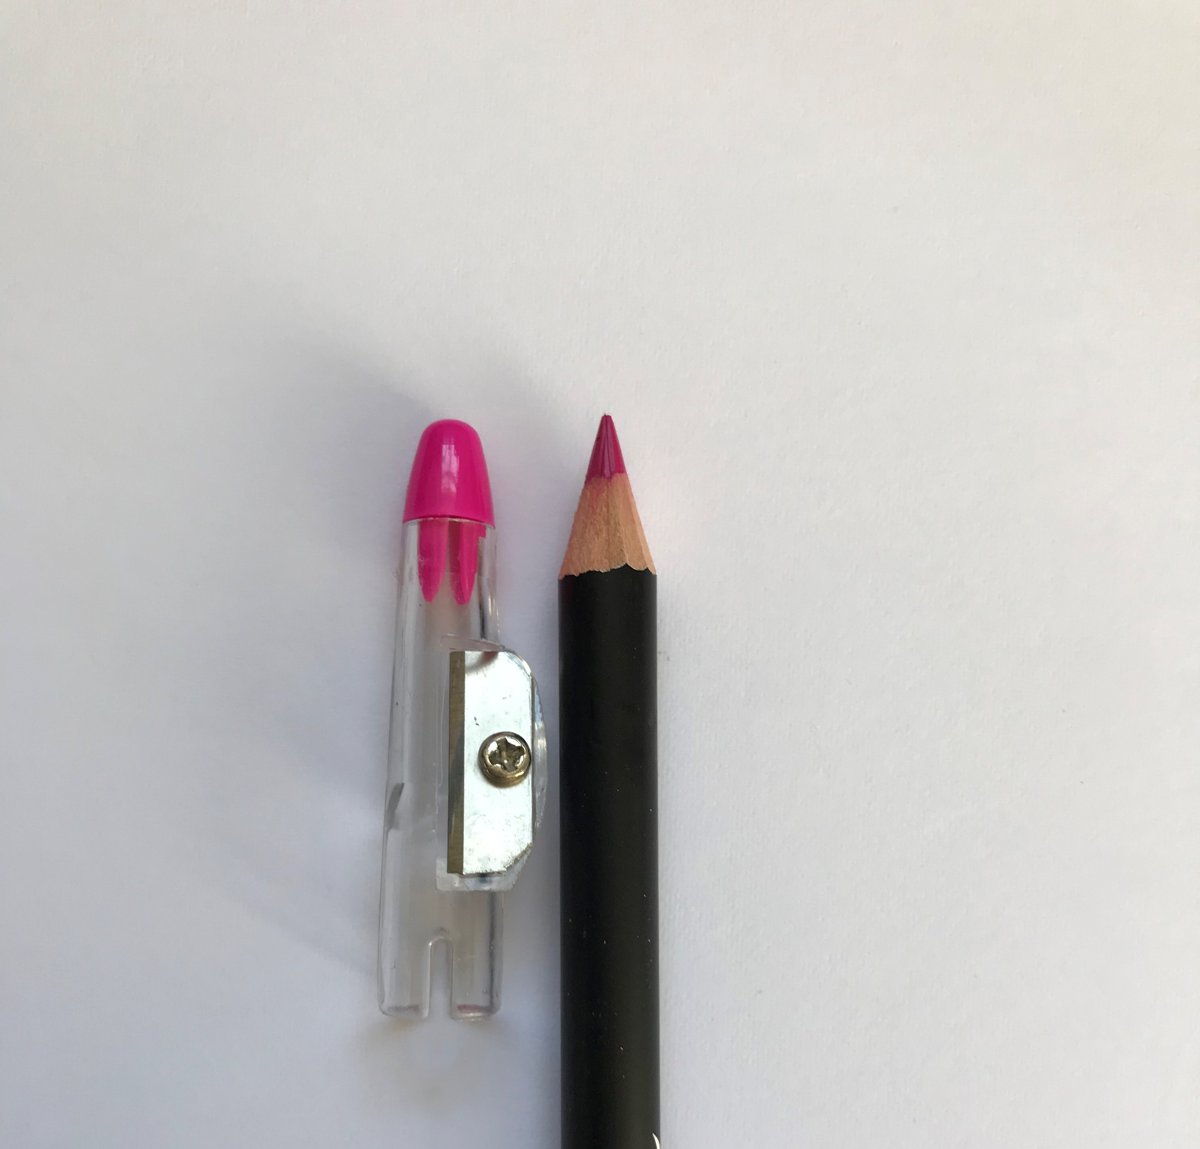 Lovely Pop Cosmetics - 2 in 1 extra lang Oogpotlood en Lippotlood met puntenslijper - fuchsia/fel roze // Eye & Lip Liner - fuchsia / fuchsia - 20016